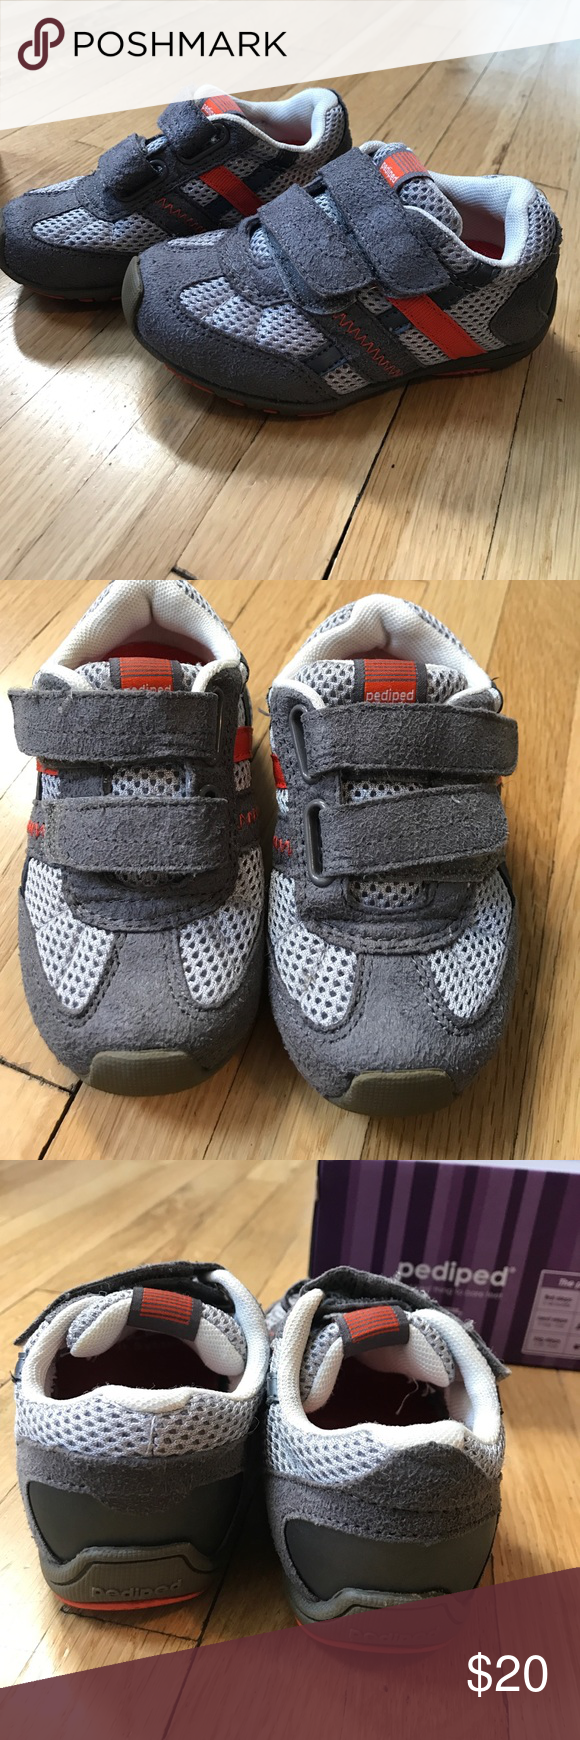 Like new - PEDIPED flex system sneakers | Pediped shoes ...